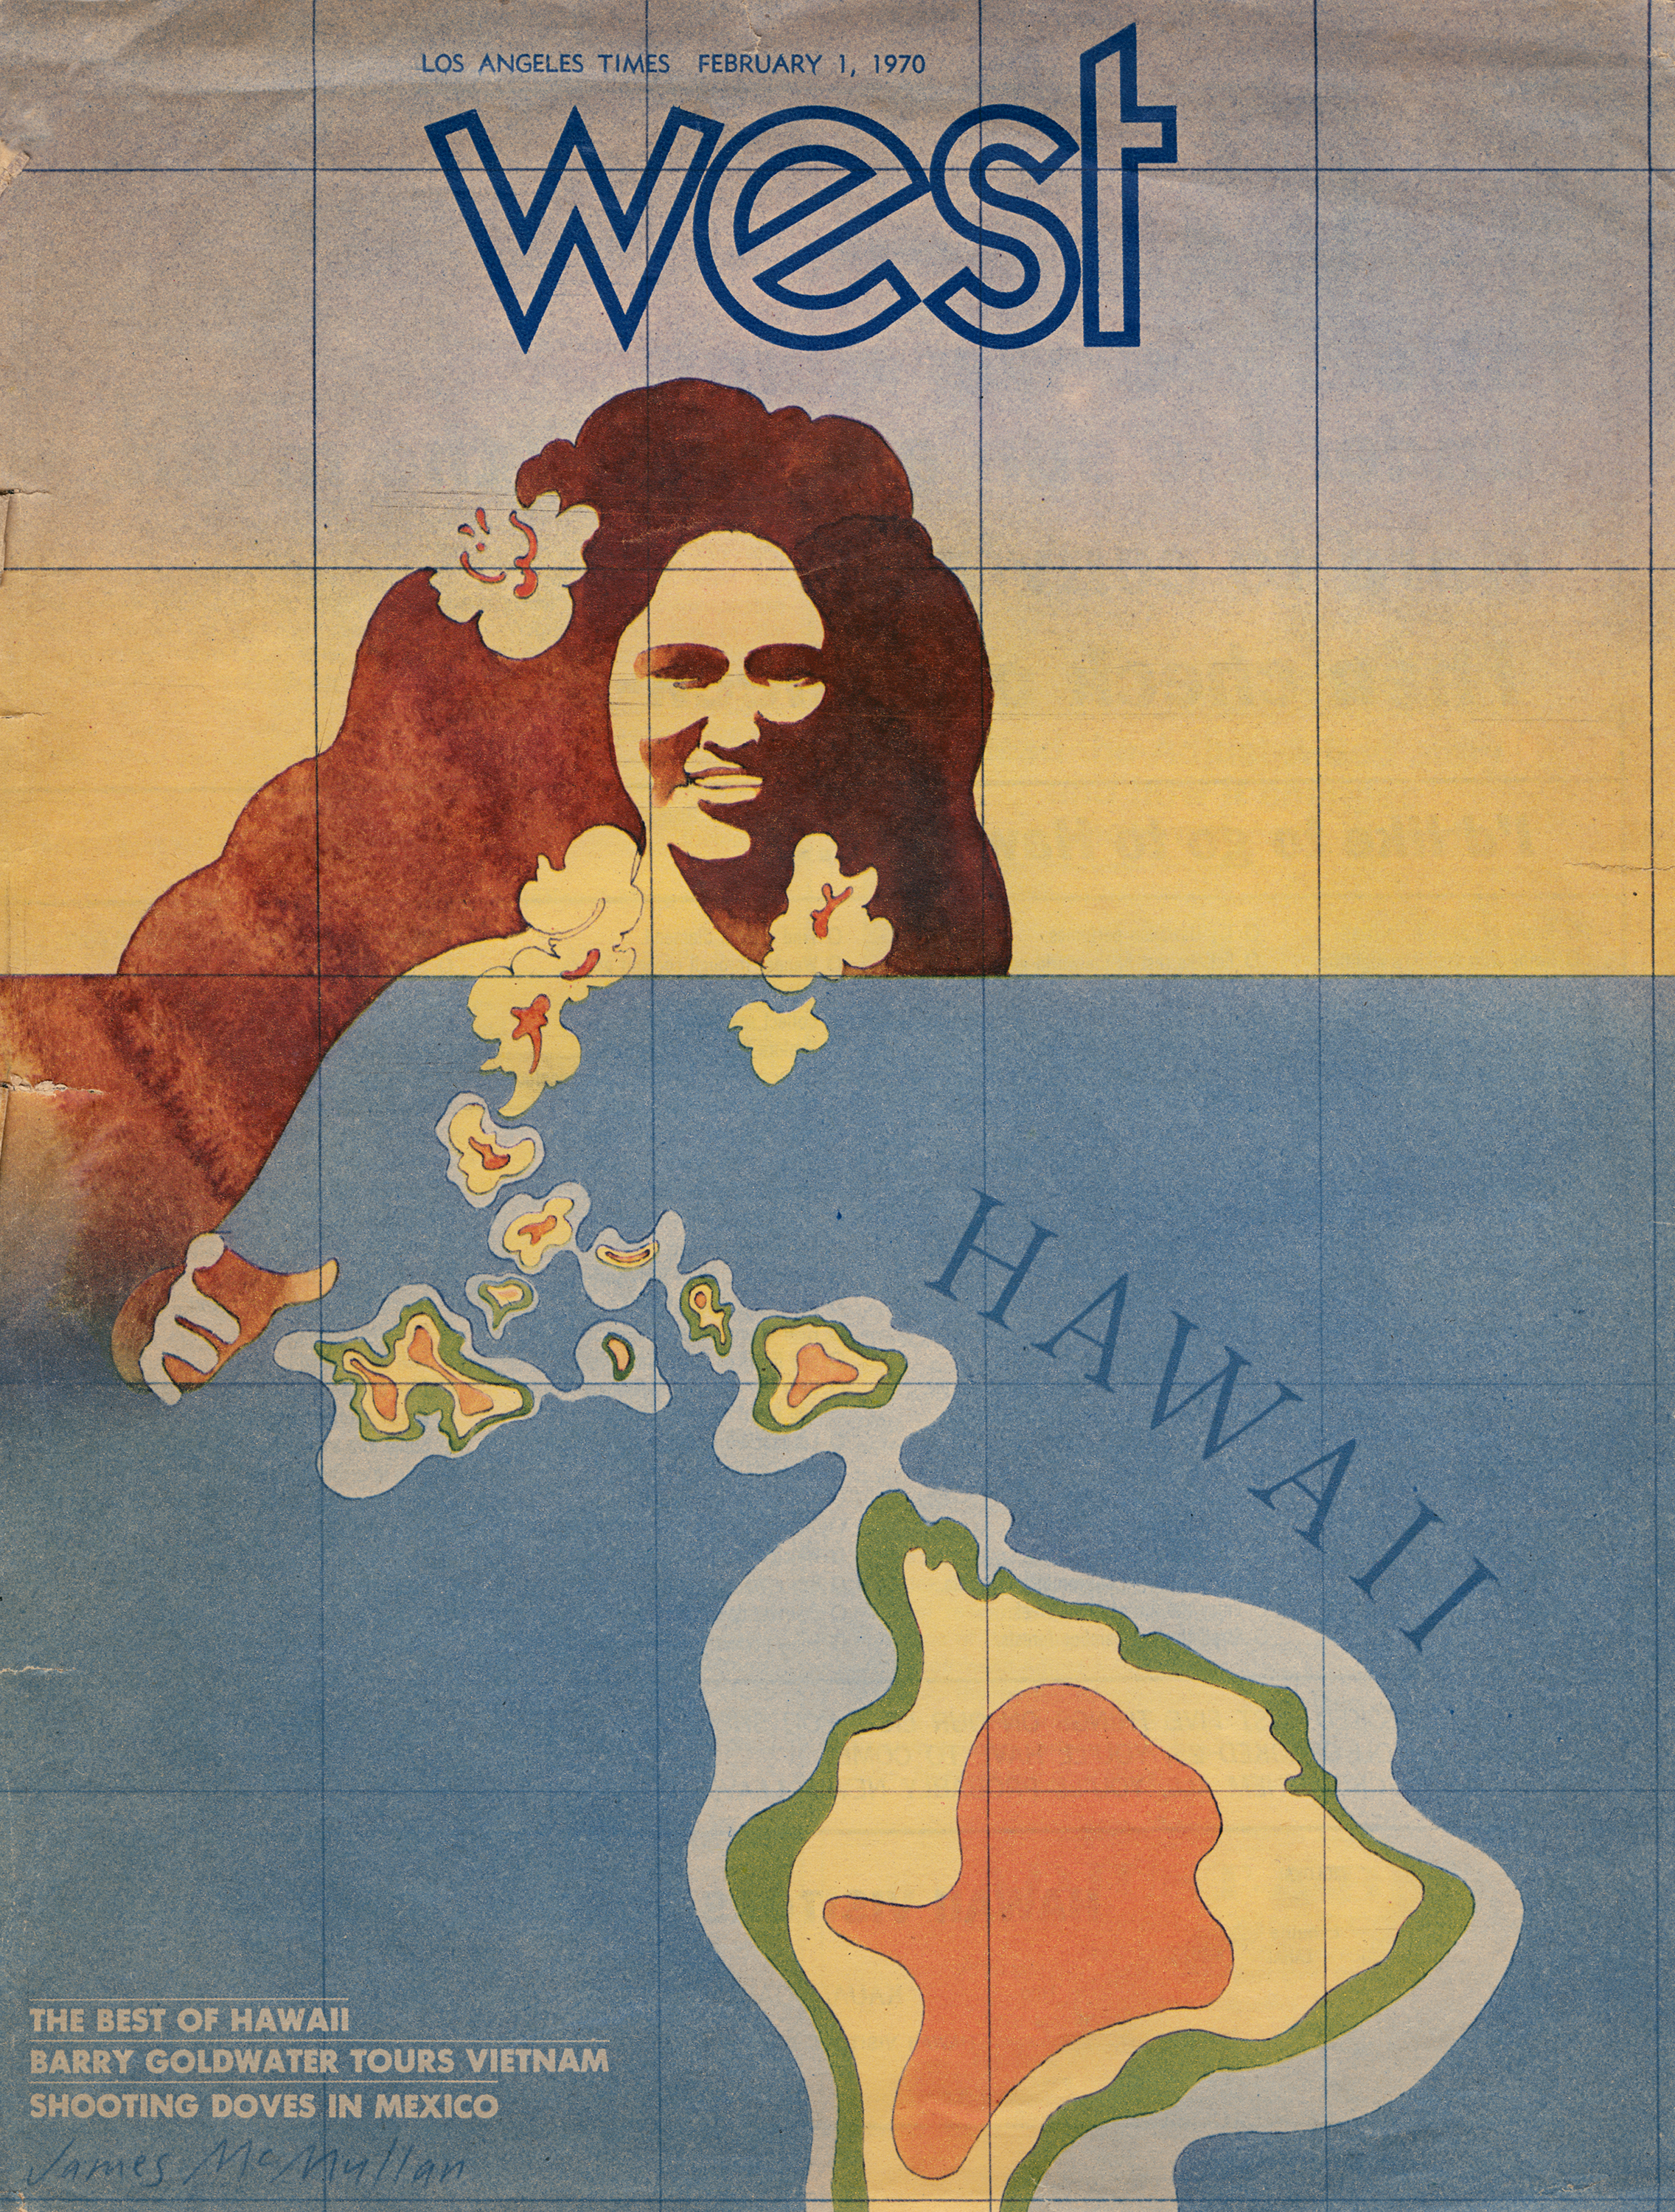 Magazine cover of a watercolor illustration of a Hawaiian woman wearing a flower lei which morphs into a large map of Hawaii.